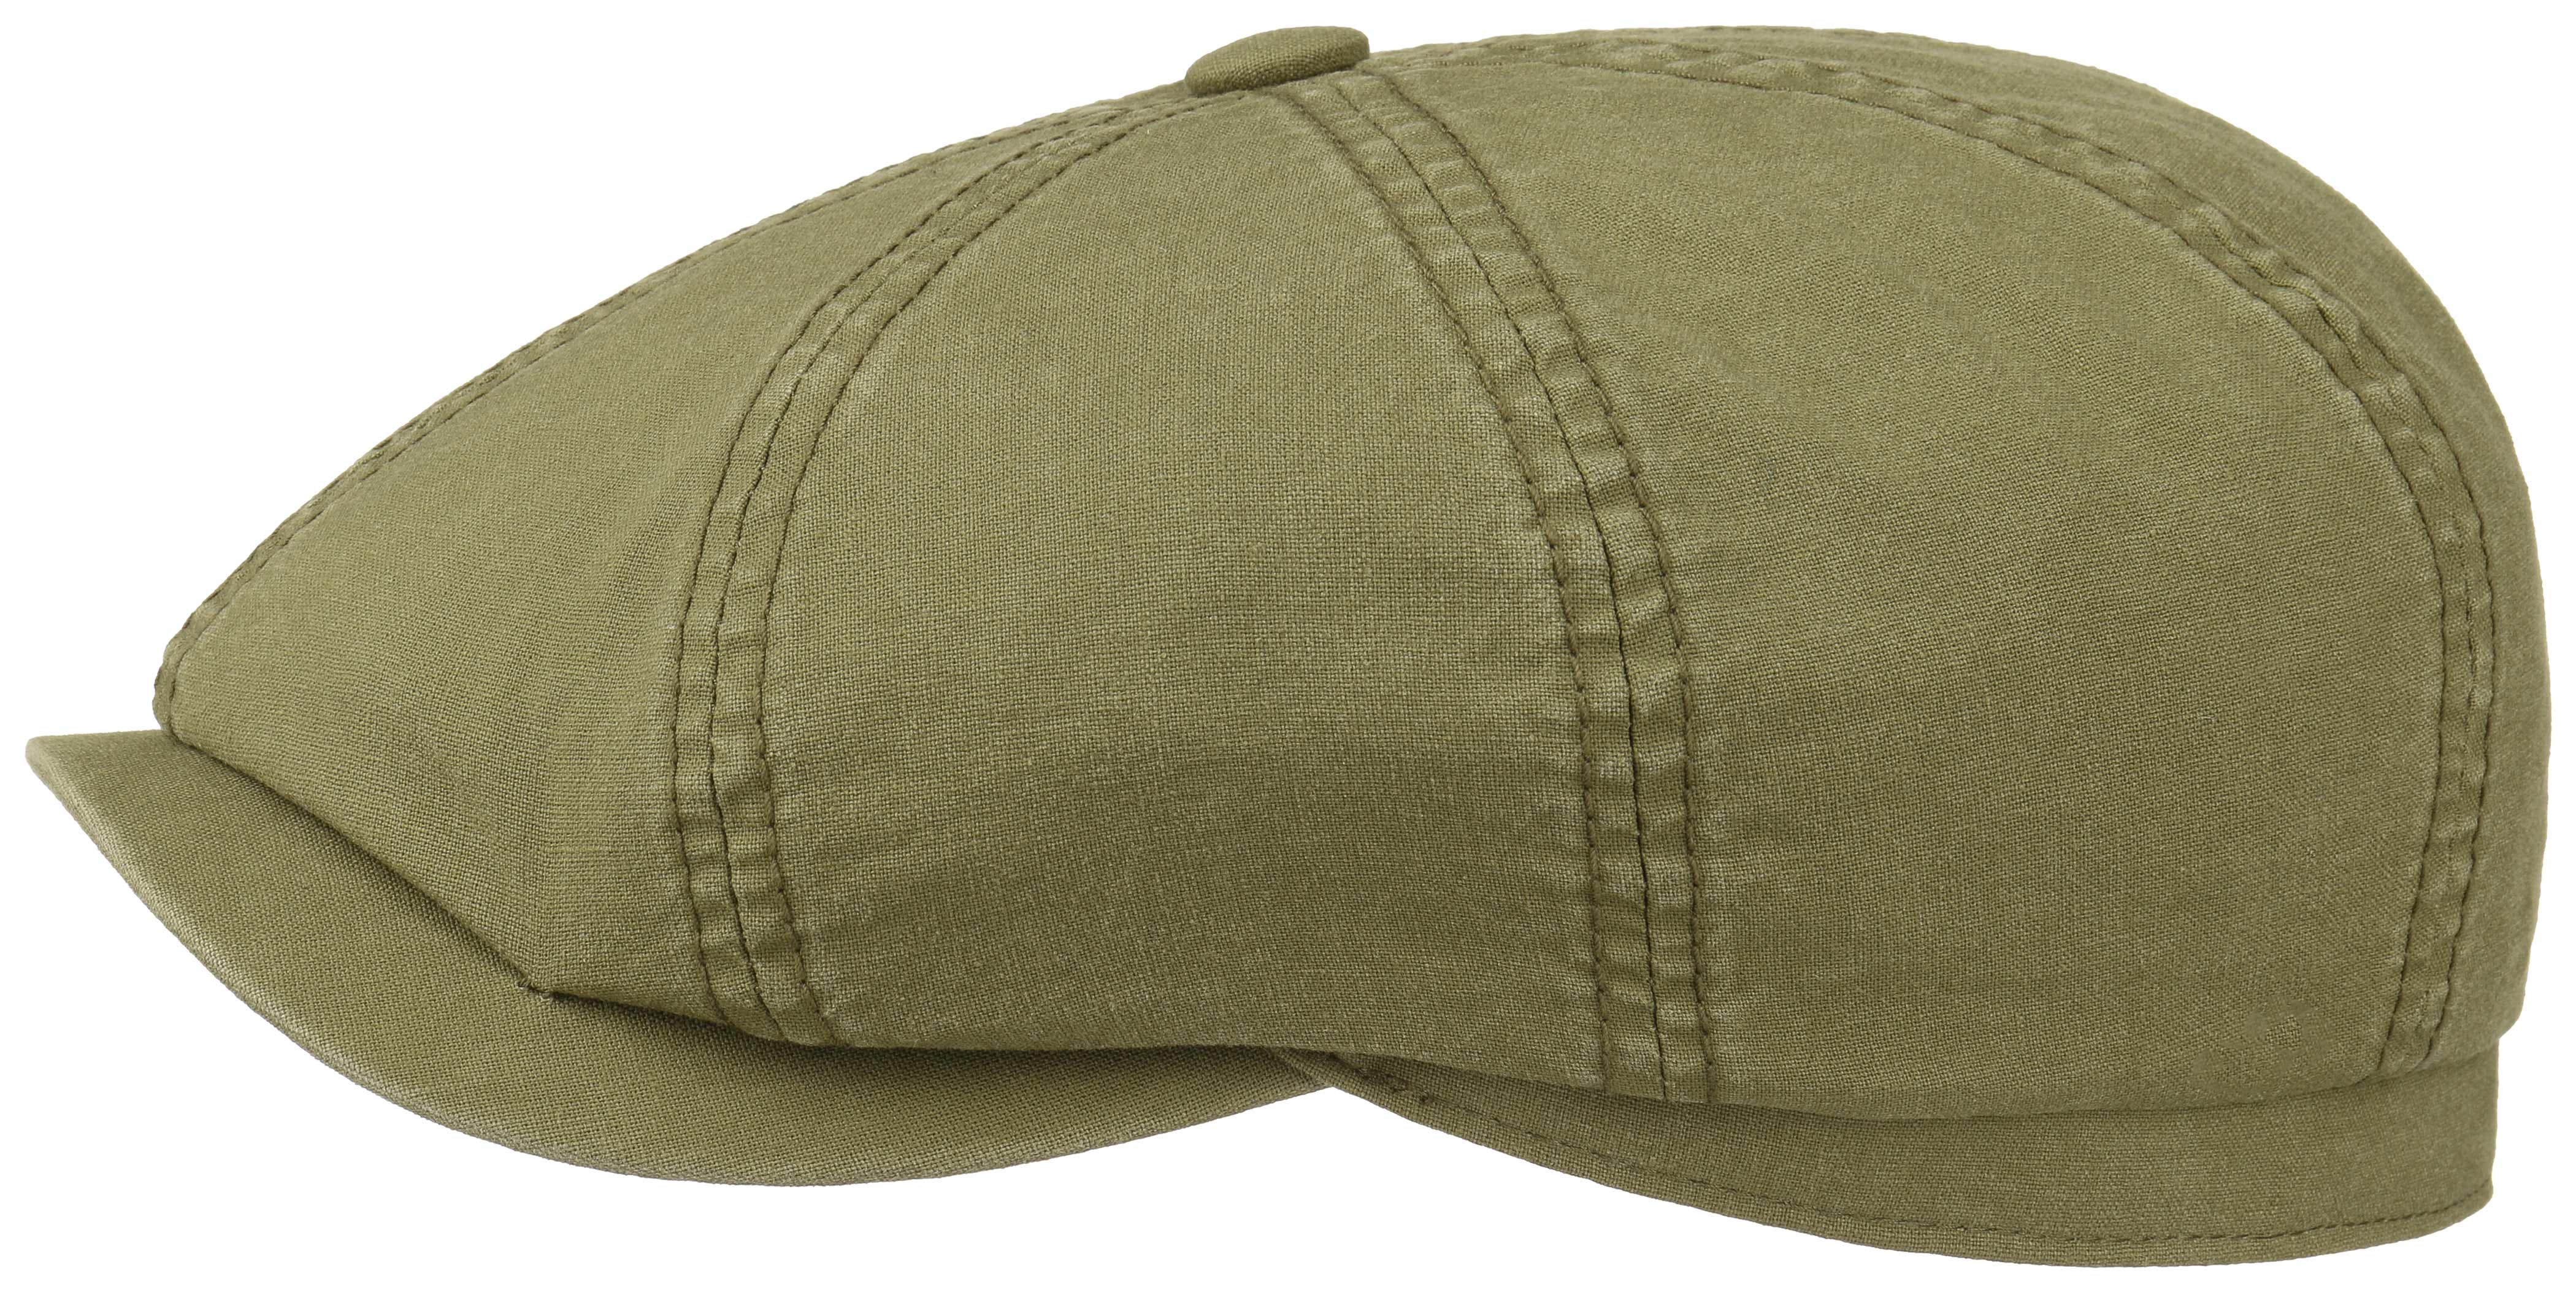 46c45154215ab4 Stetson Teras Delave Organic Flat Hat - Olive   Country Attire